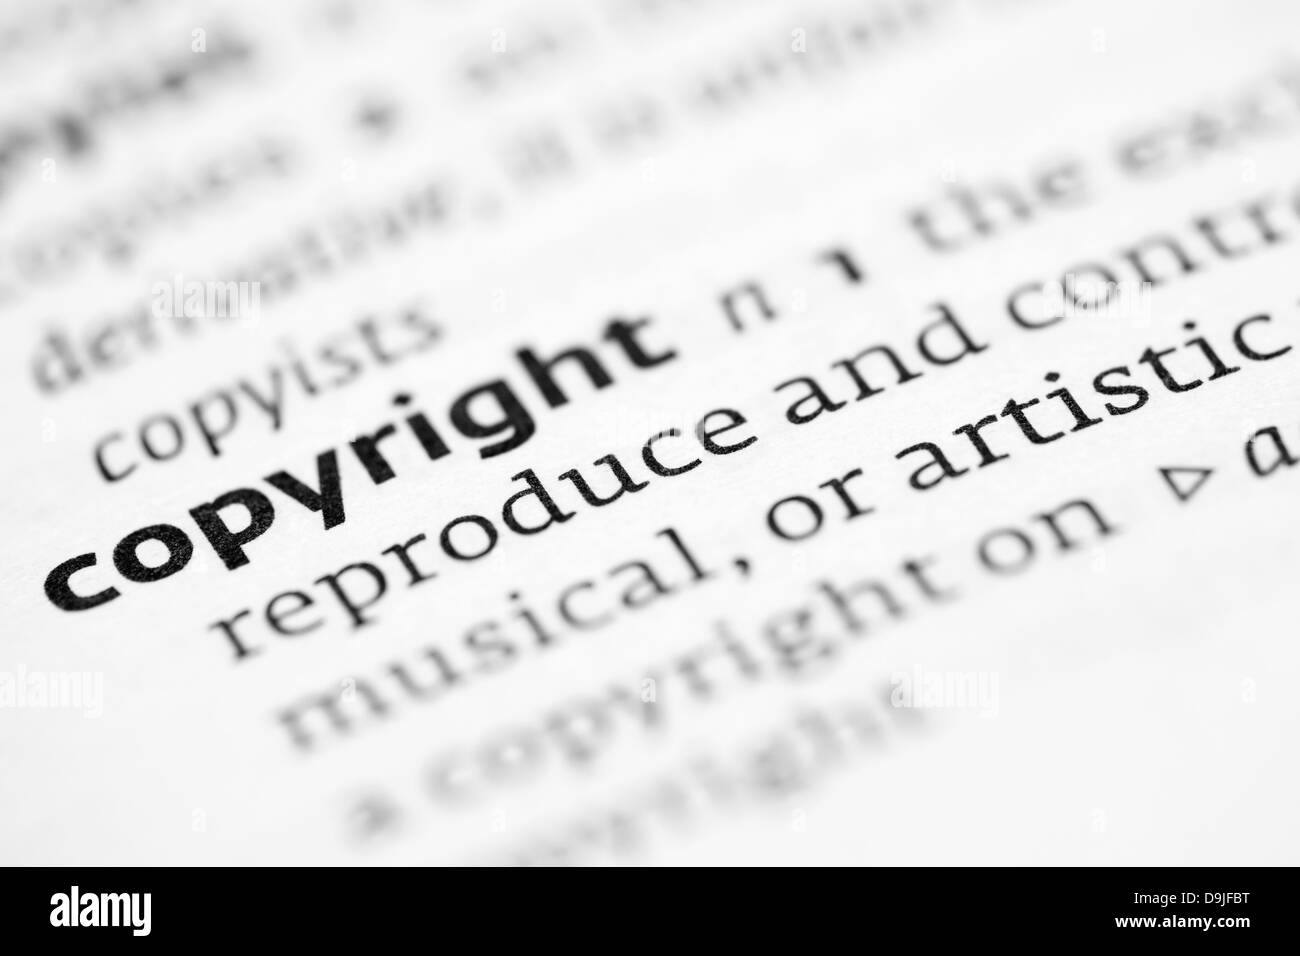 copyright definition in a dictionary stock photo: 57570236 - alamy